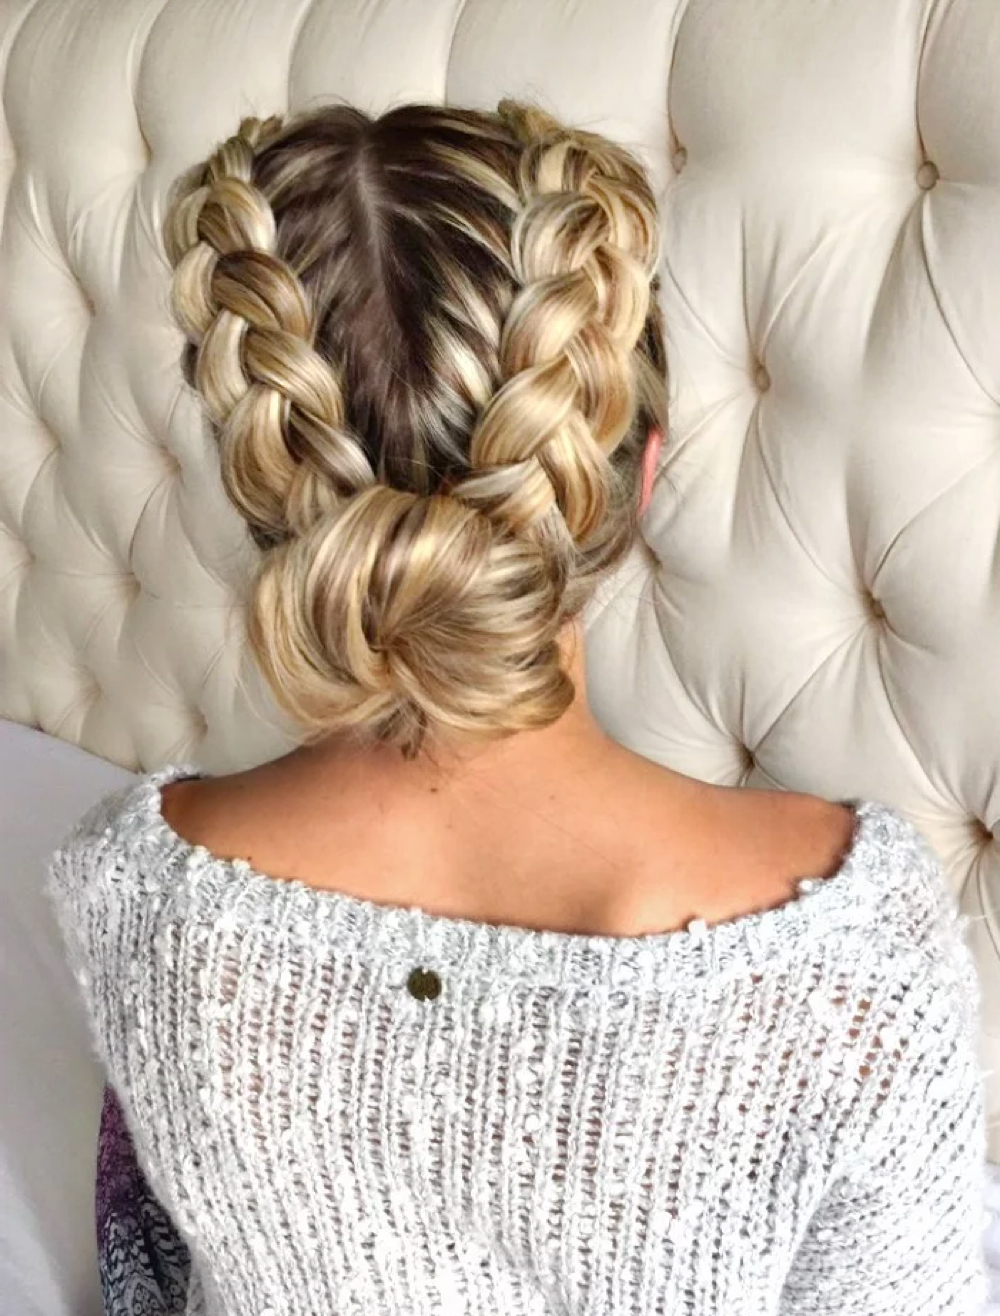 29 Gorgeous Braided Updo Ideas For 2019 Pertaining To Most Up To Date Messy Crown Braid Updo Hairstyles (View 1 of 20)